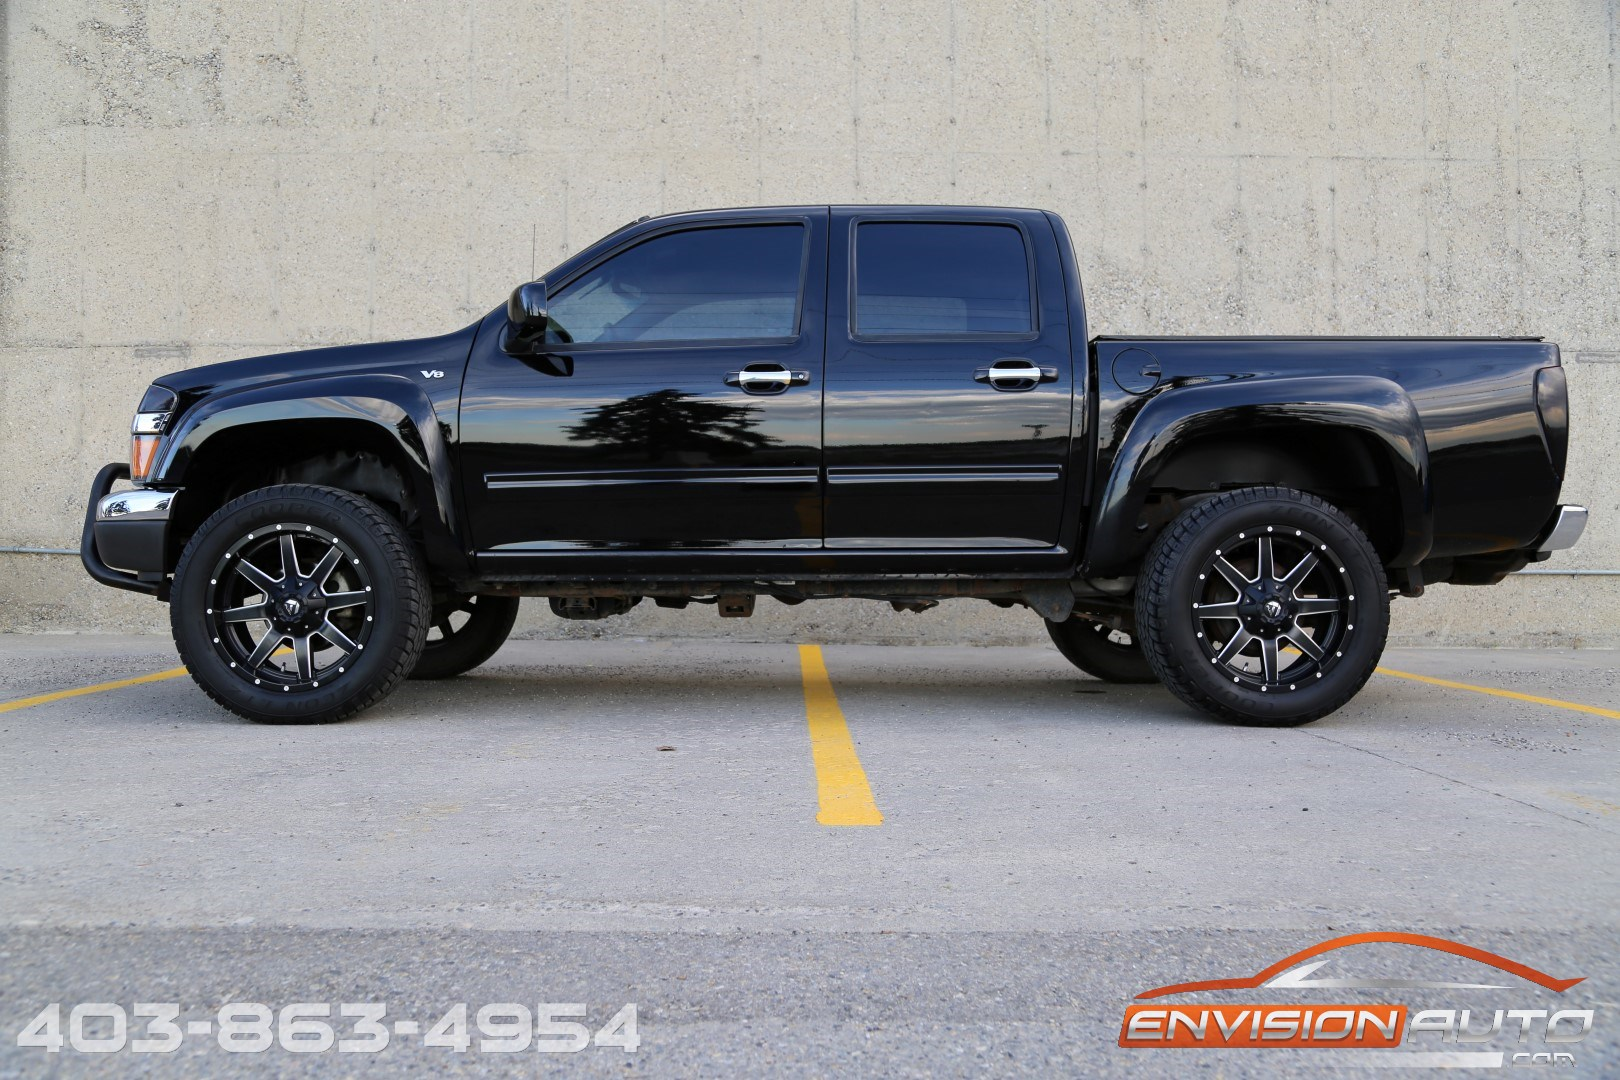 2010 Gmc Canyon Sle 4 215 4 5 3l V8 20in Fuel Wheels Envision Auto Calgary Highline Luxury